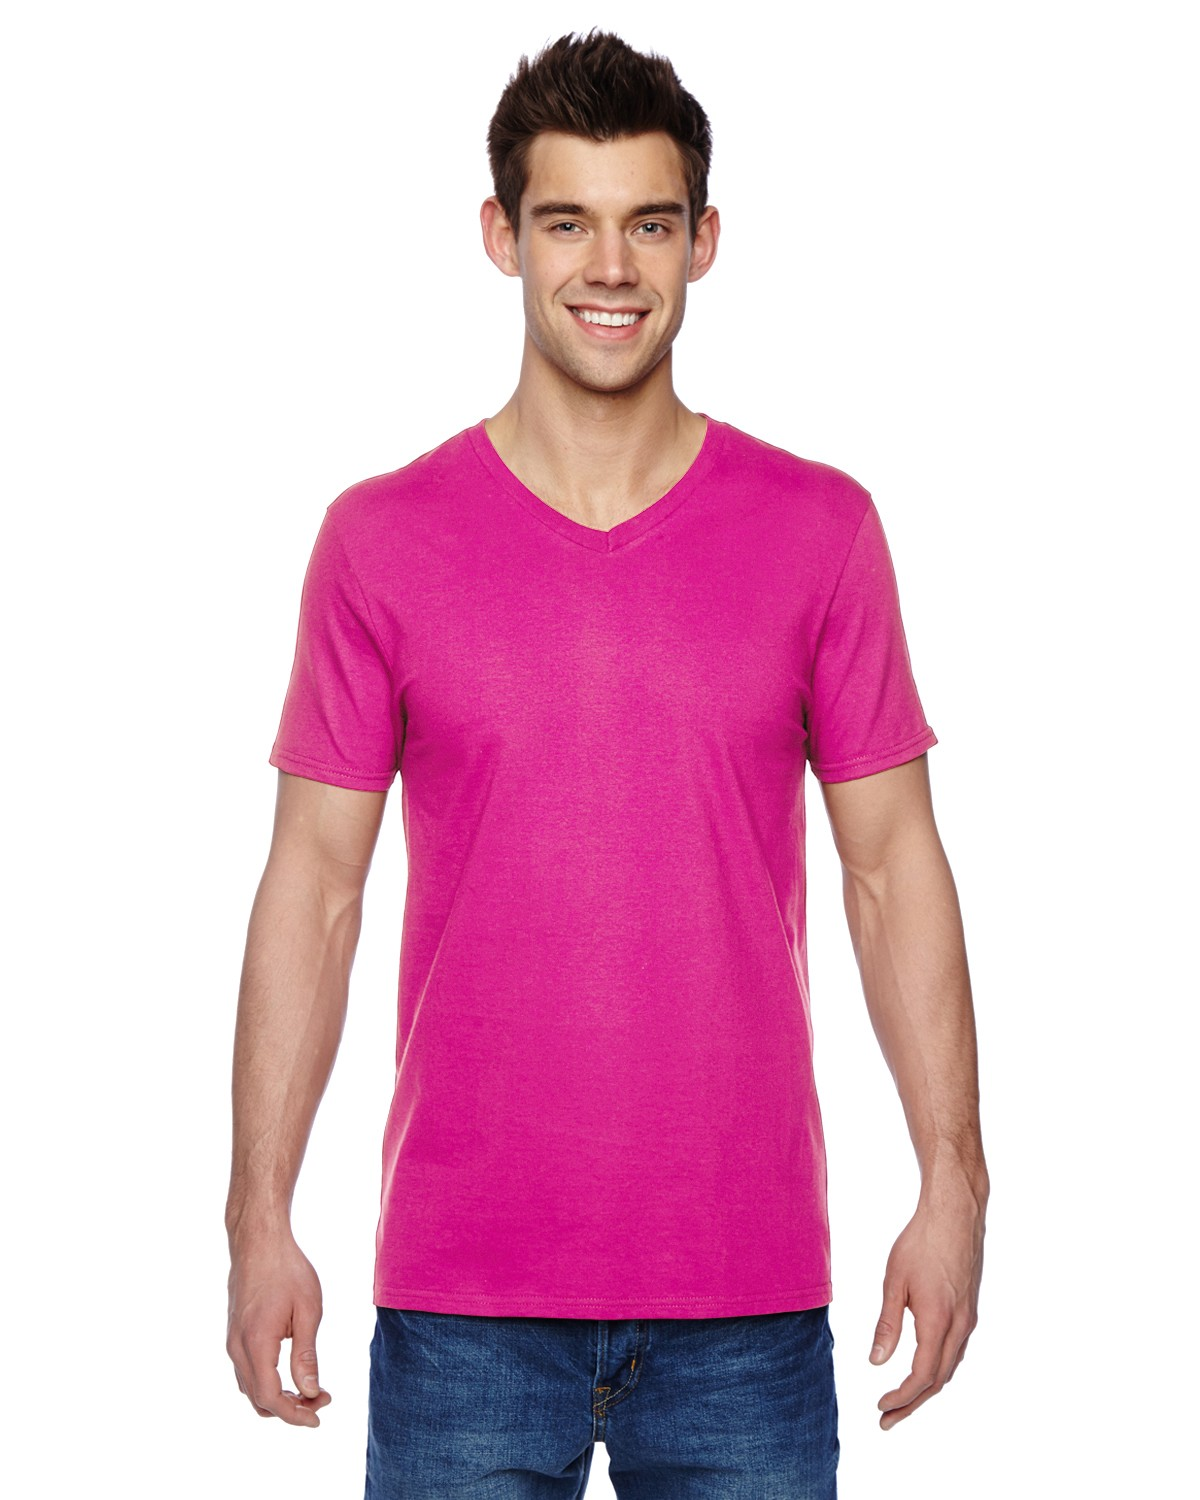 SFVR Fruit of the Loom CYBER PINK